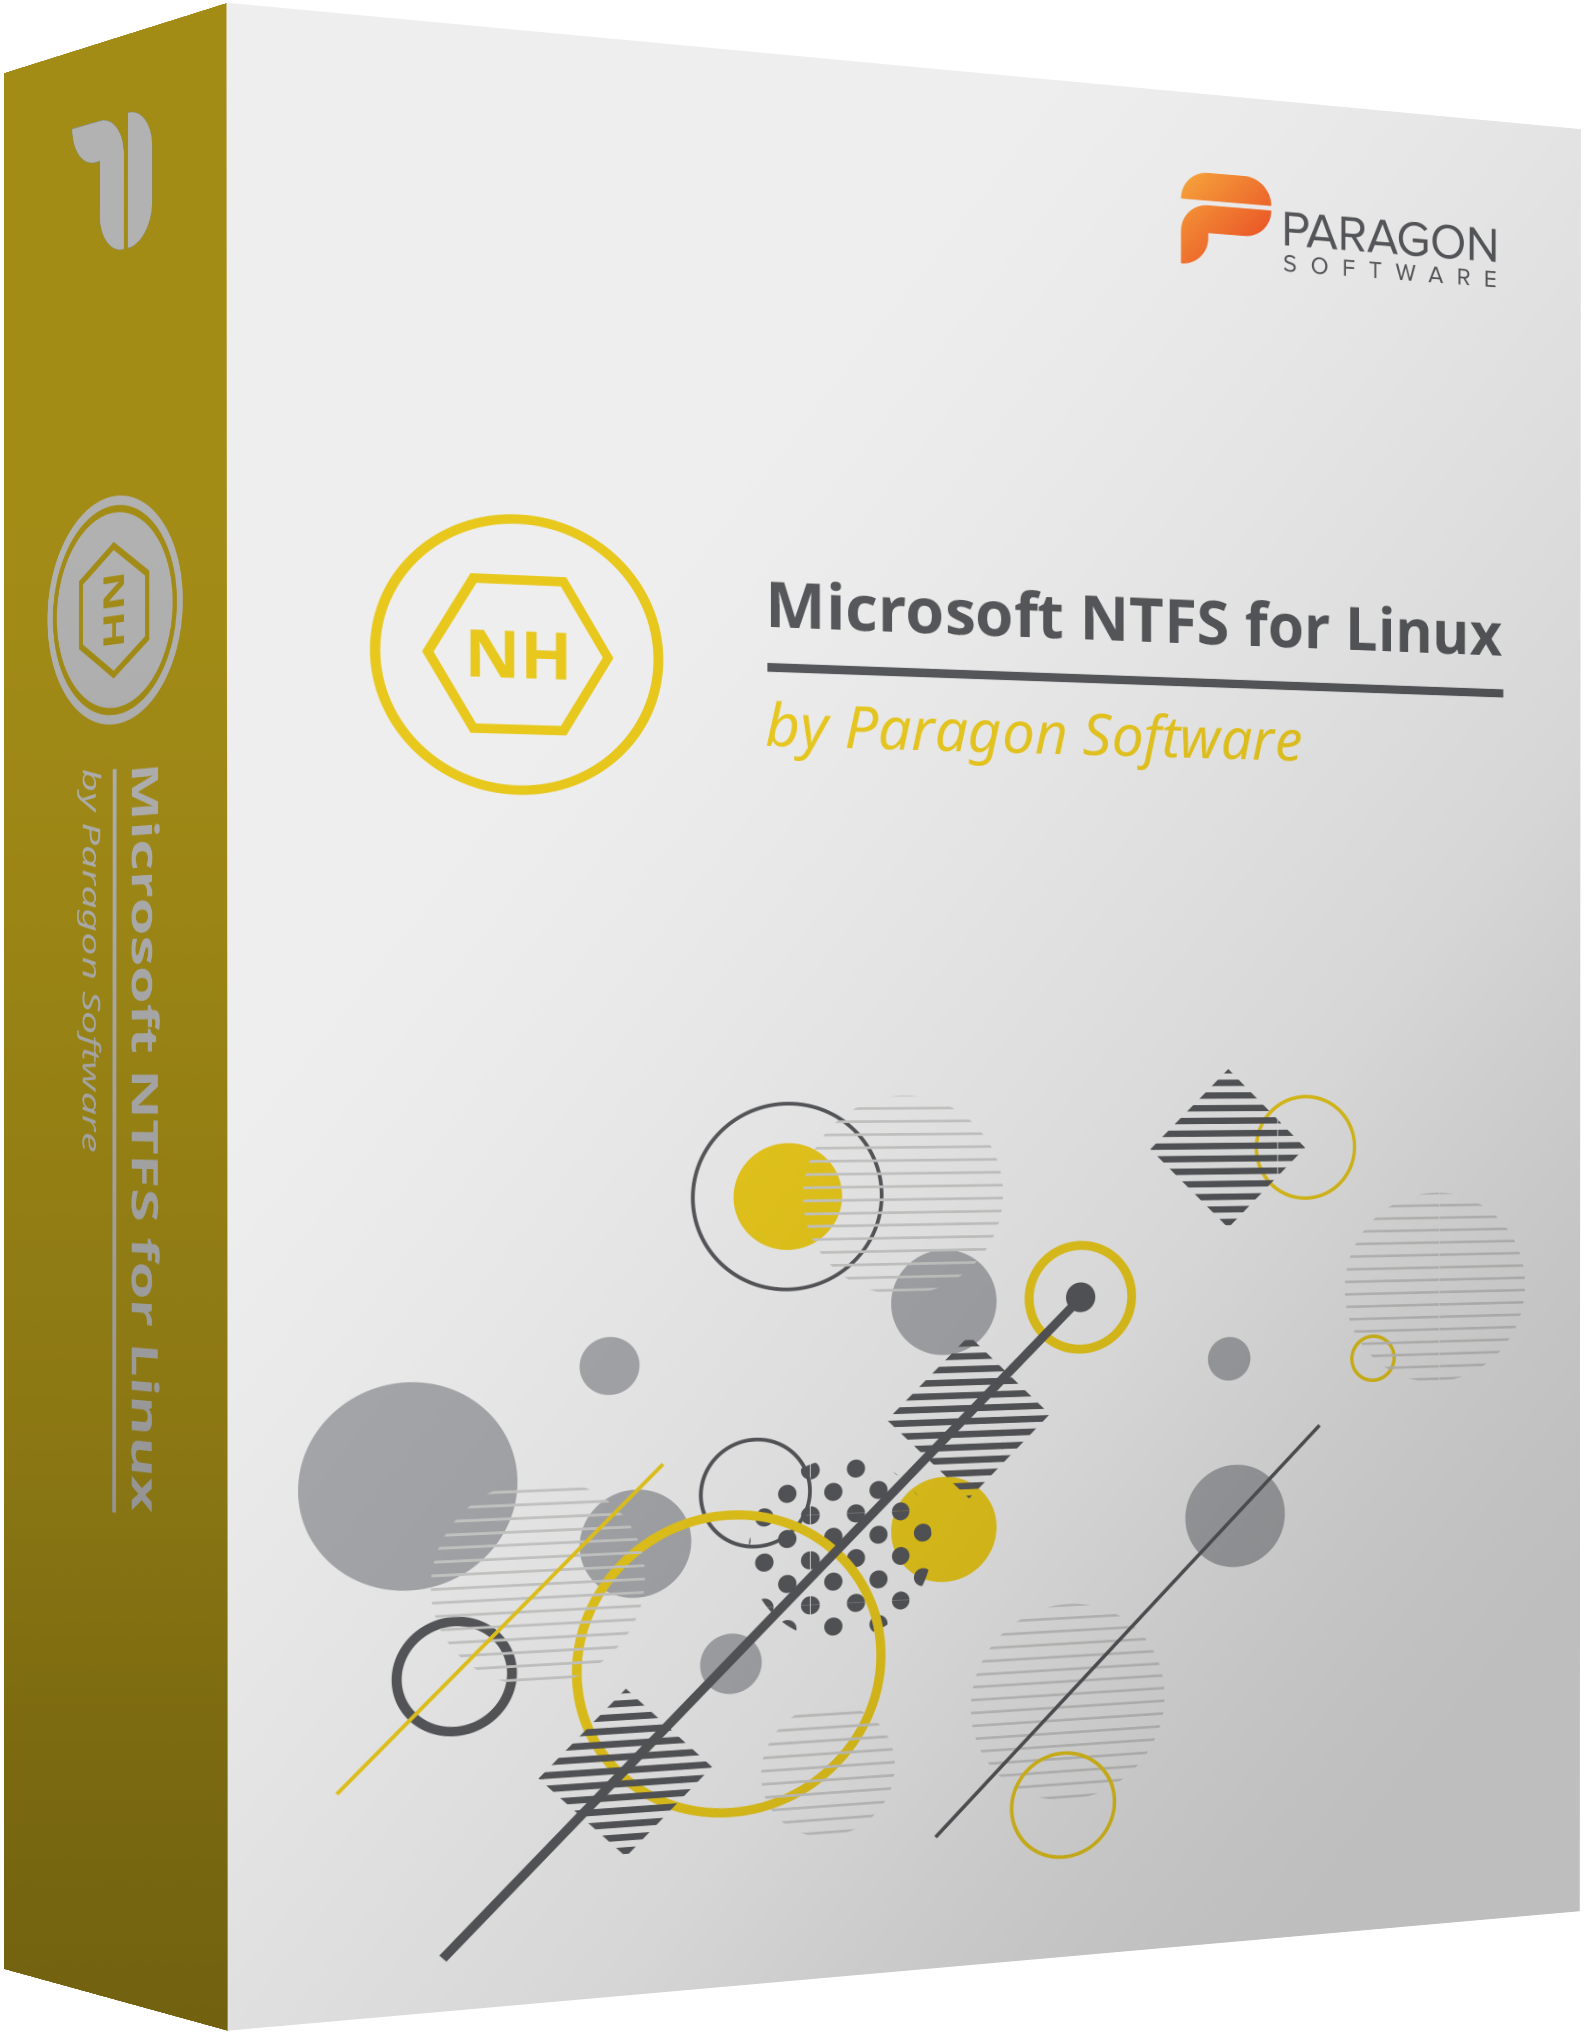 Microsoft_NTFS_for_Linux_by_Paragon_Software